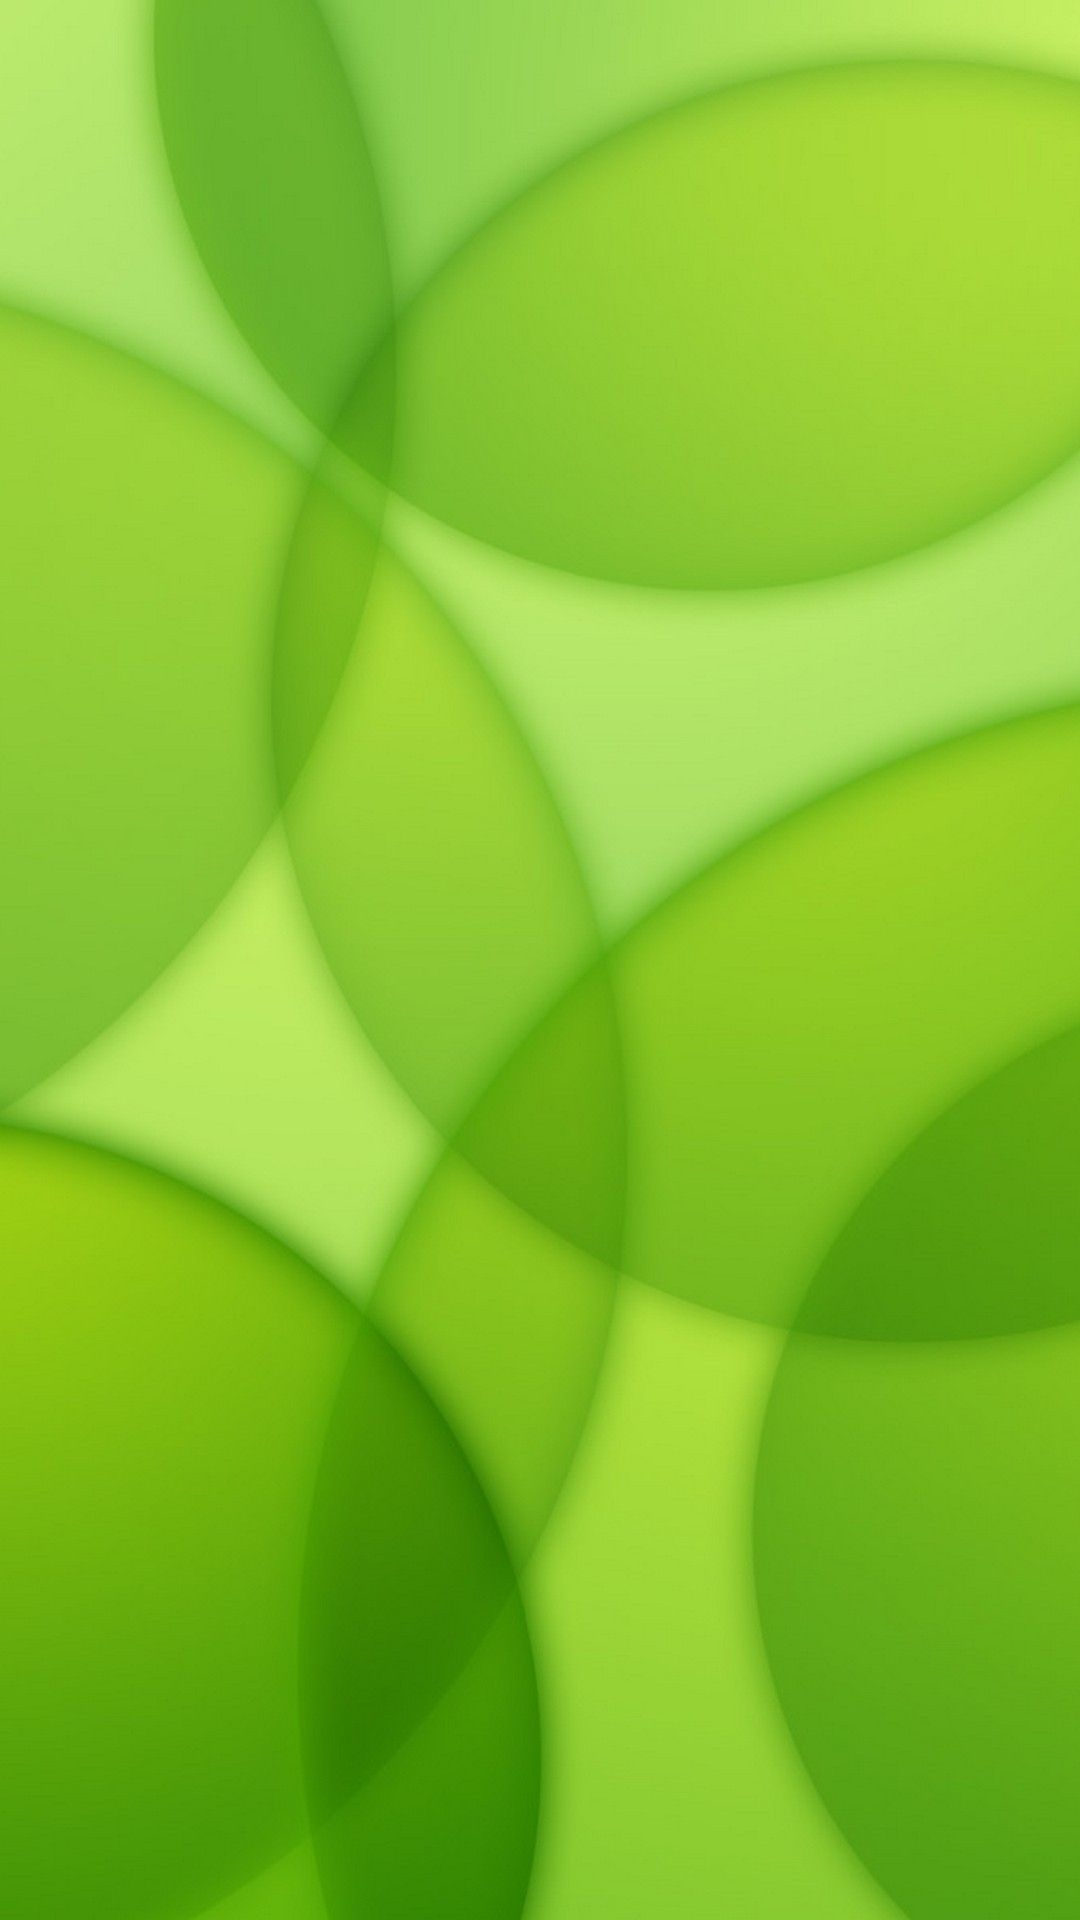 android wallpaper lime green - 2018 | iphonewallpapers | pinterest